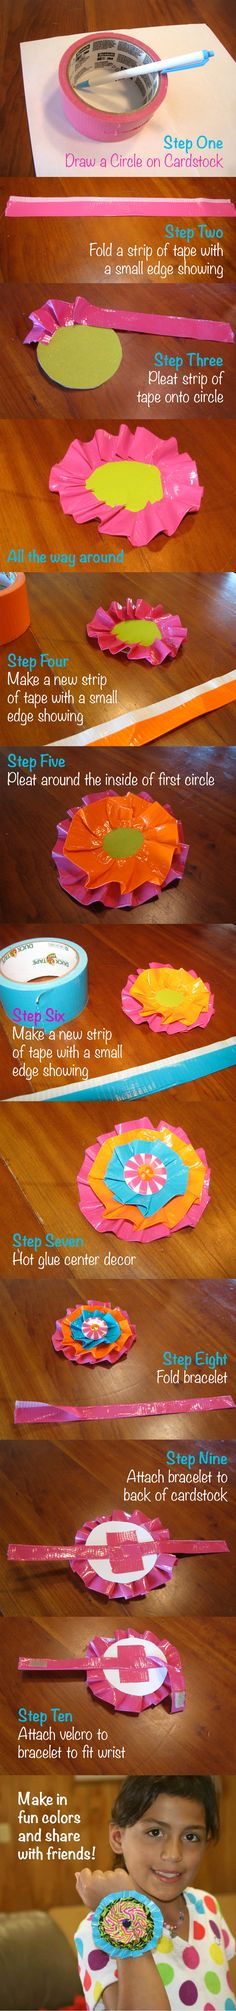 Make one, Share one. Duct Tape Flower Bracelet- Adapted from duct tape book Crazy Cool Duct Tape Projects by Marisa Pawelko